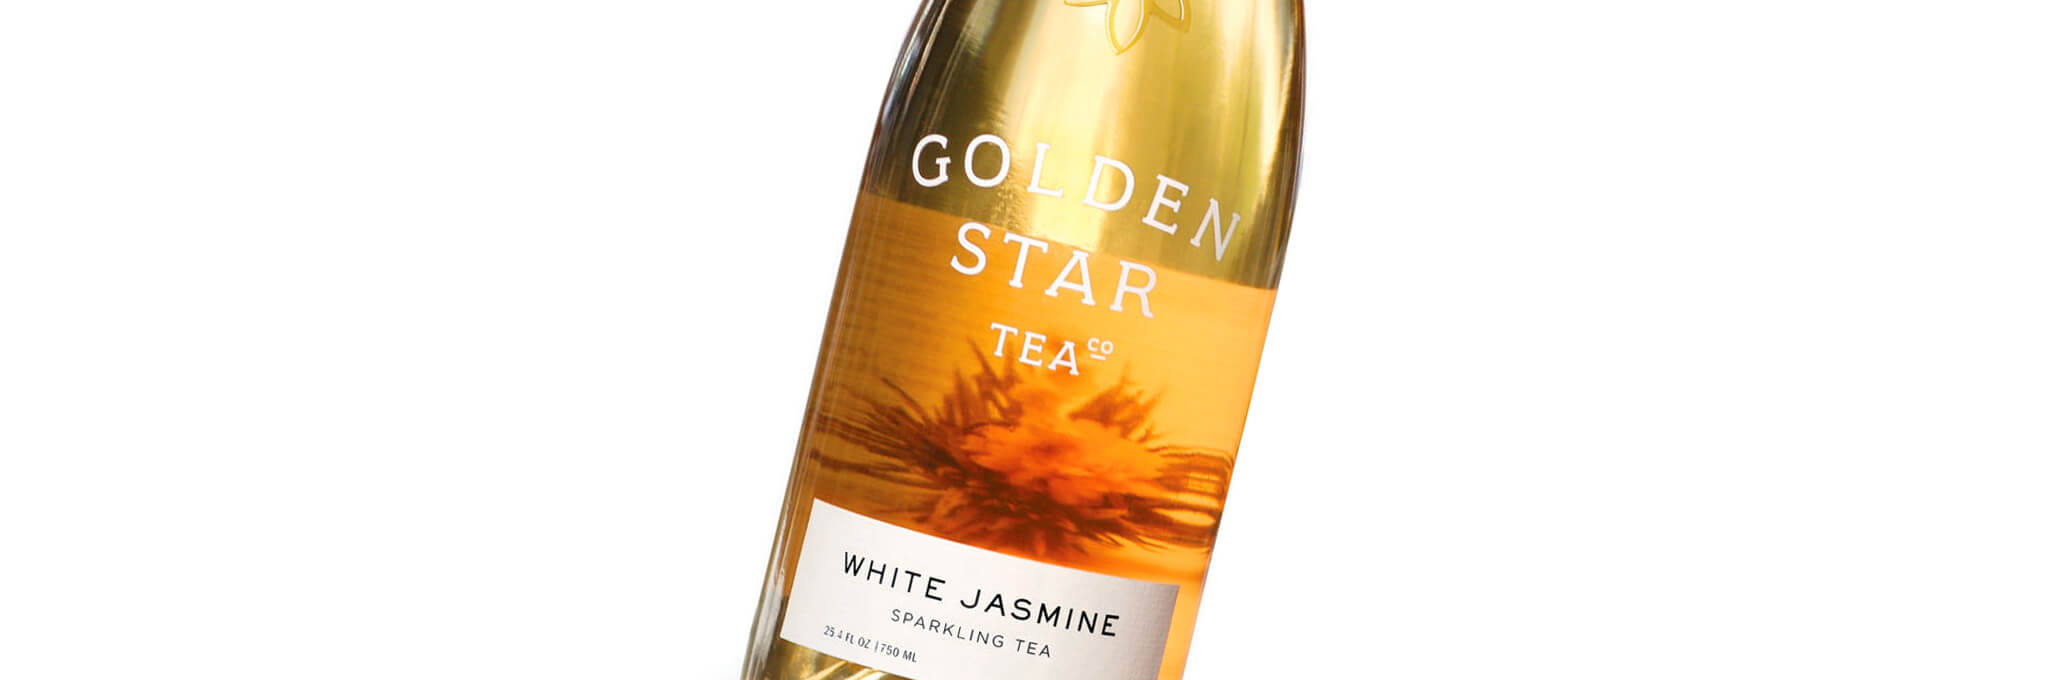 Cropped glass bottle of Golden Star Tea White Jasmine